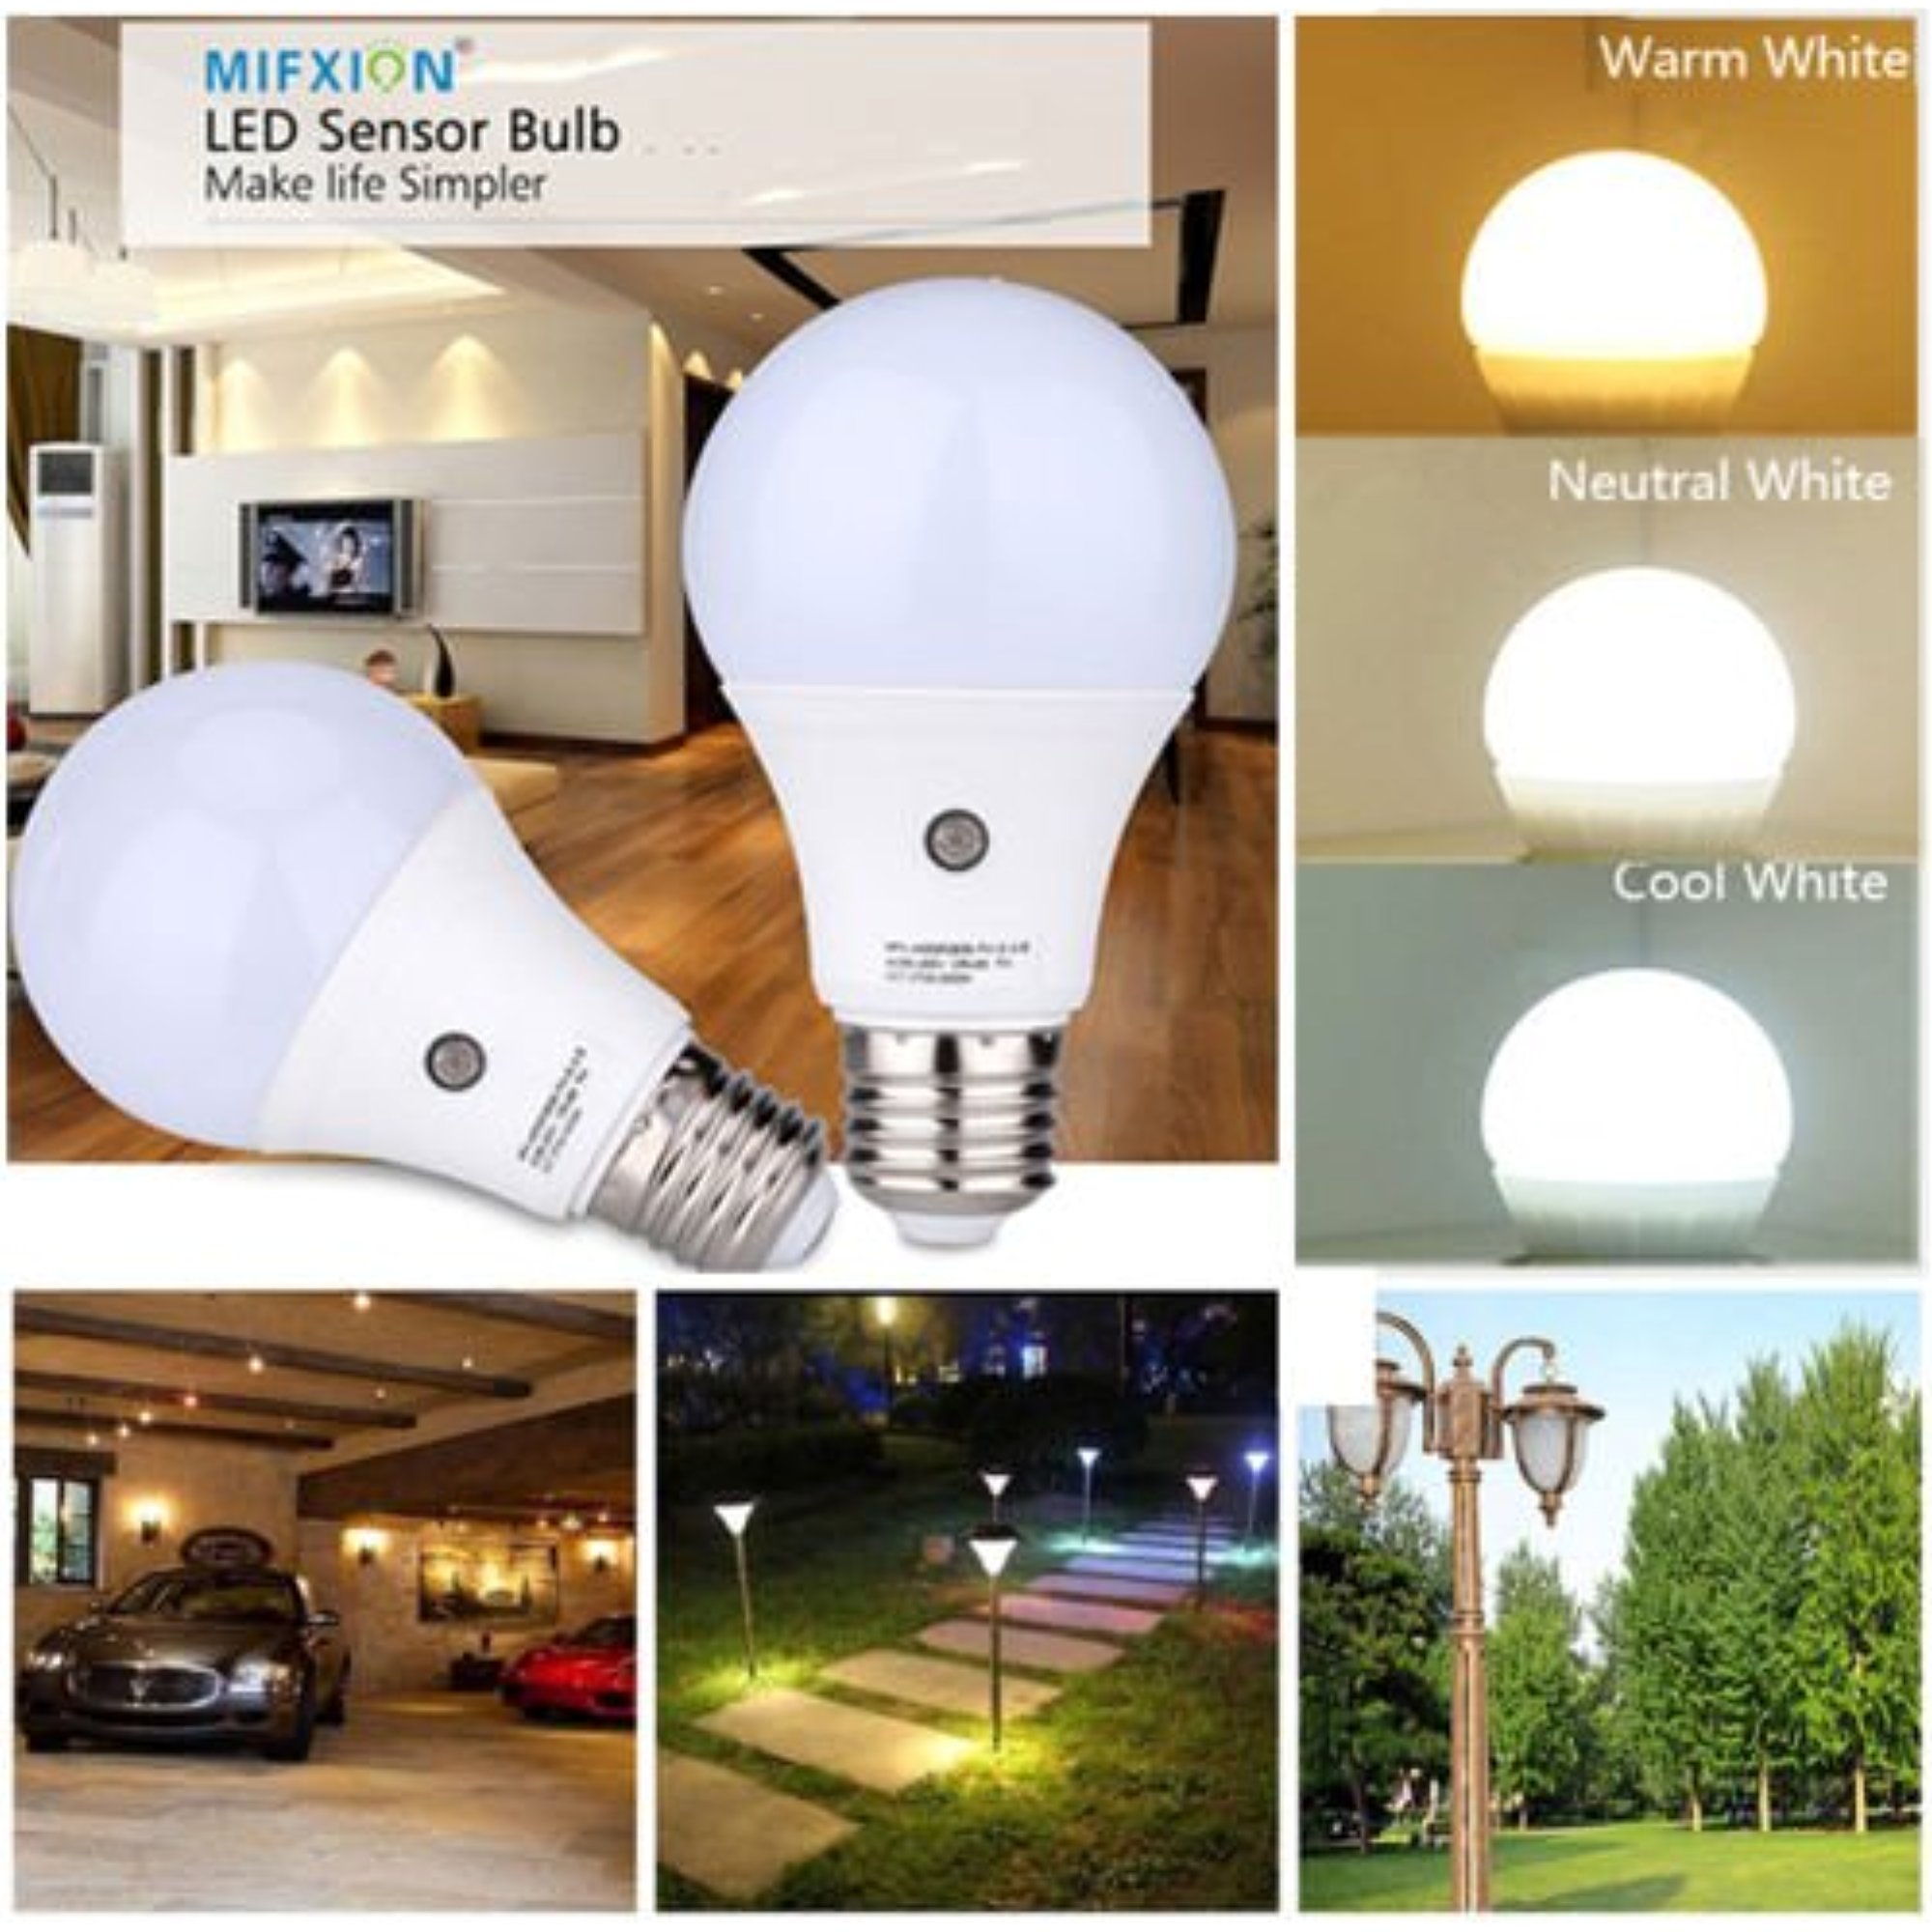 Sensor Bulbs,TOPCHANCES E27 LED Sensor Light Bulb Lamp Auto Switch Stairs Night Light (9W 810Lumens, Warm White)